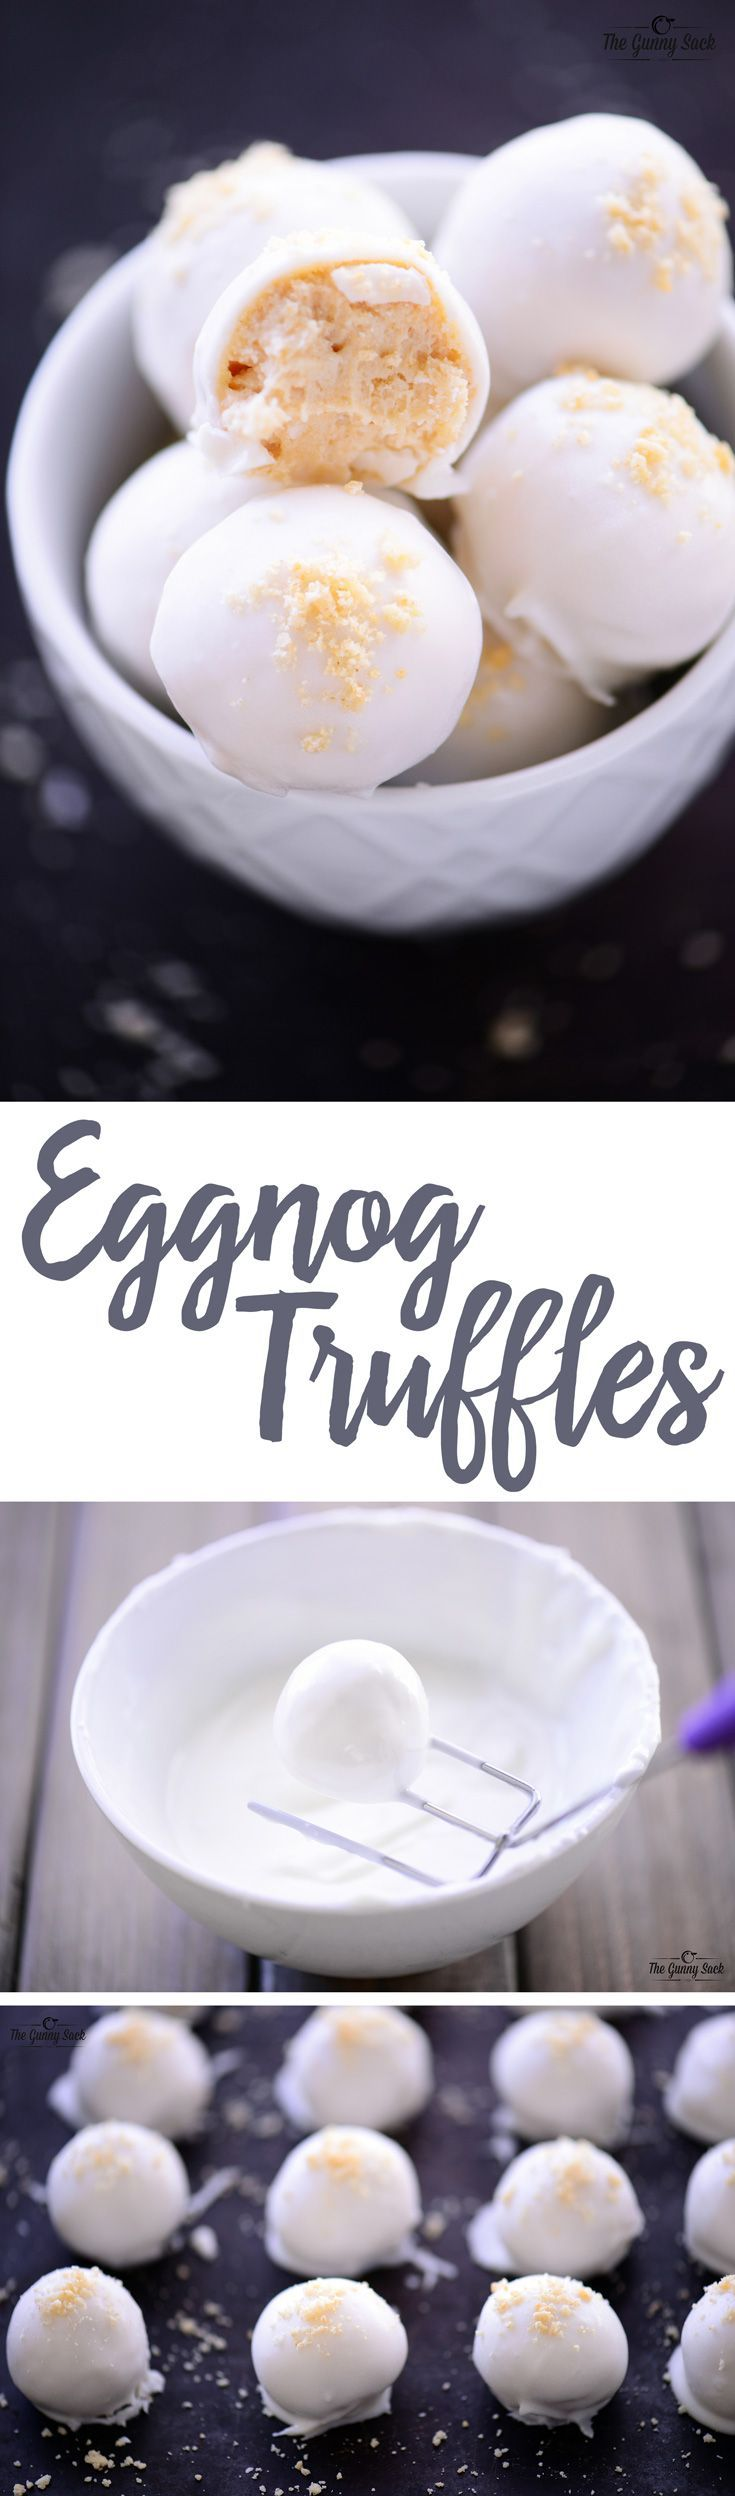 Eggnog Truffles are no bake, holiday cookies that are delicious and easy to make. Add them to your Christmas baking list for the times when your oven is full!